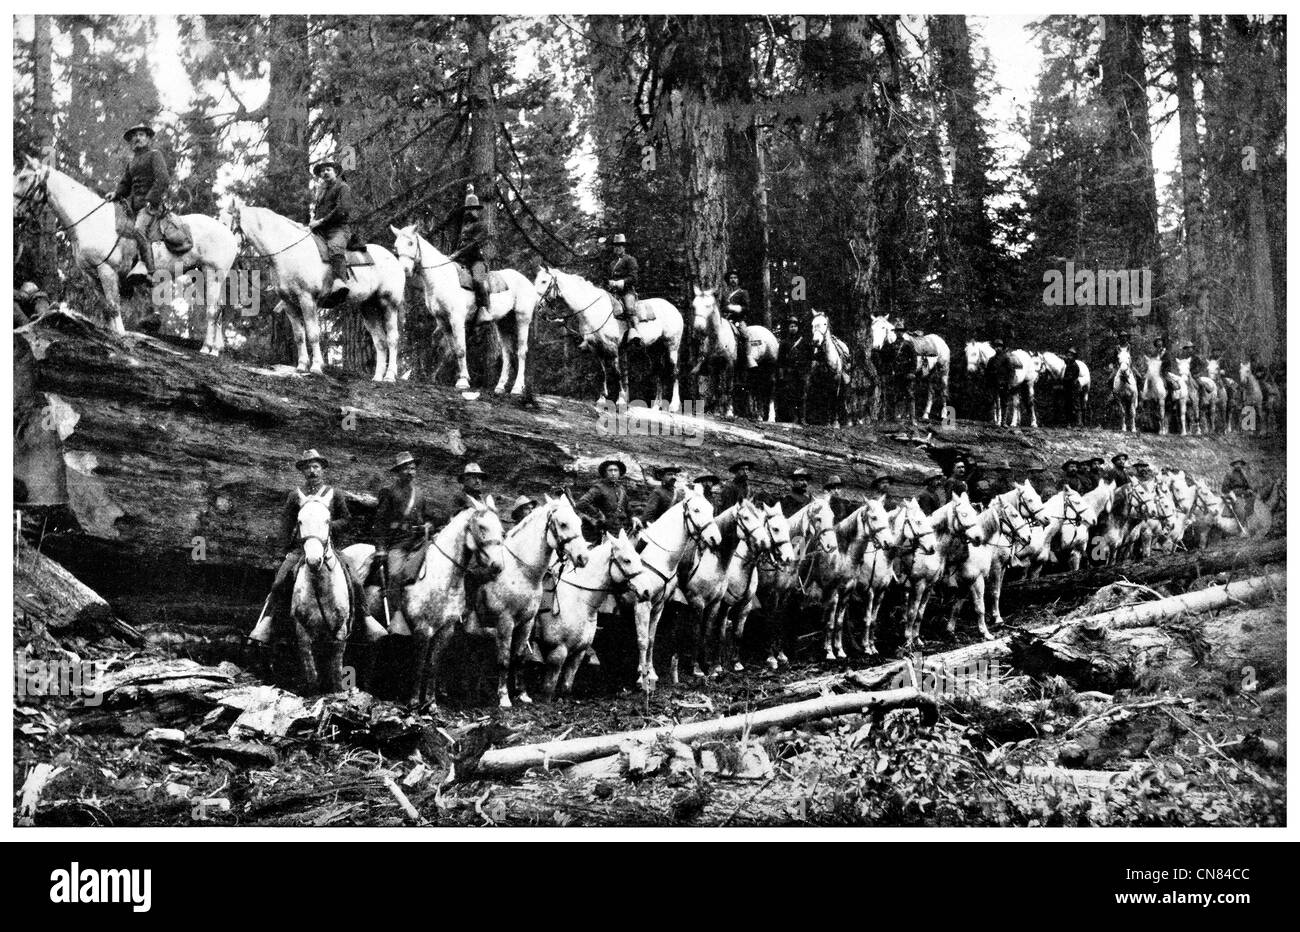 First published 1917 United States Cavalry on a Felled Sequoia lumber tree - Stock Image